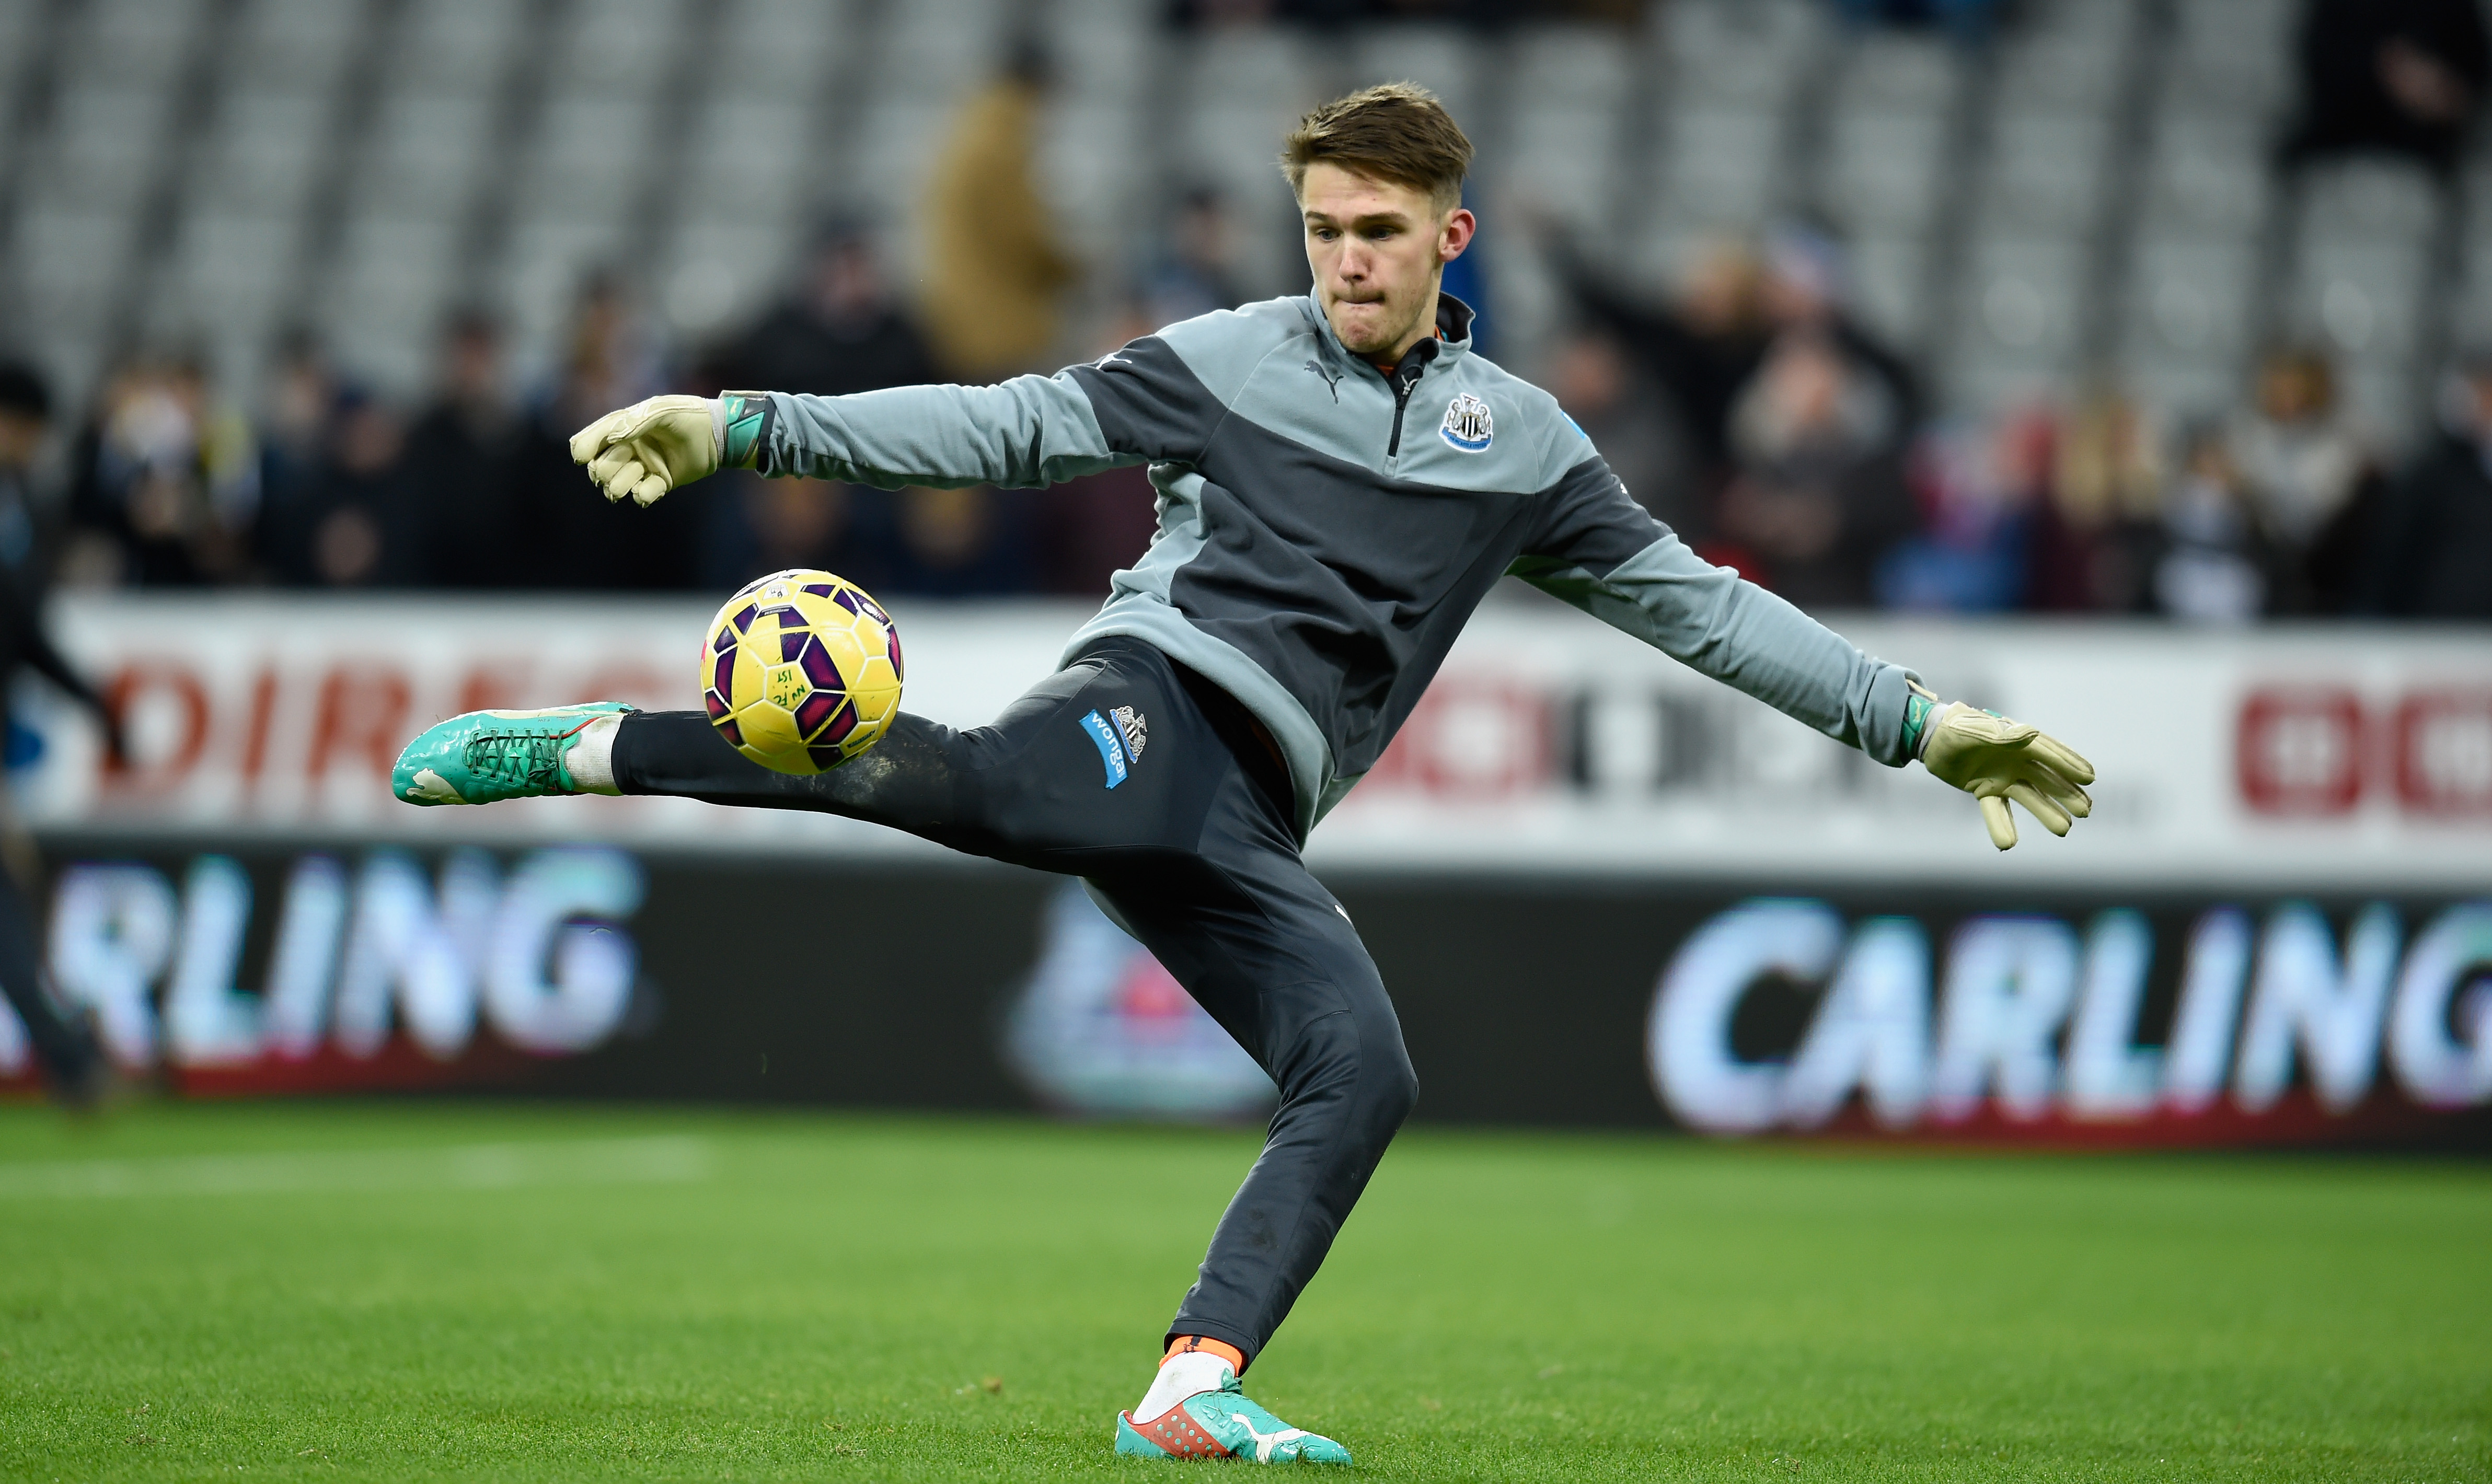 Arsenal eyeing a move for Newcastle United's Freddie Woodman who is in action in the picture